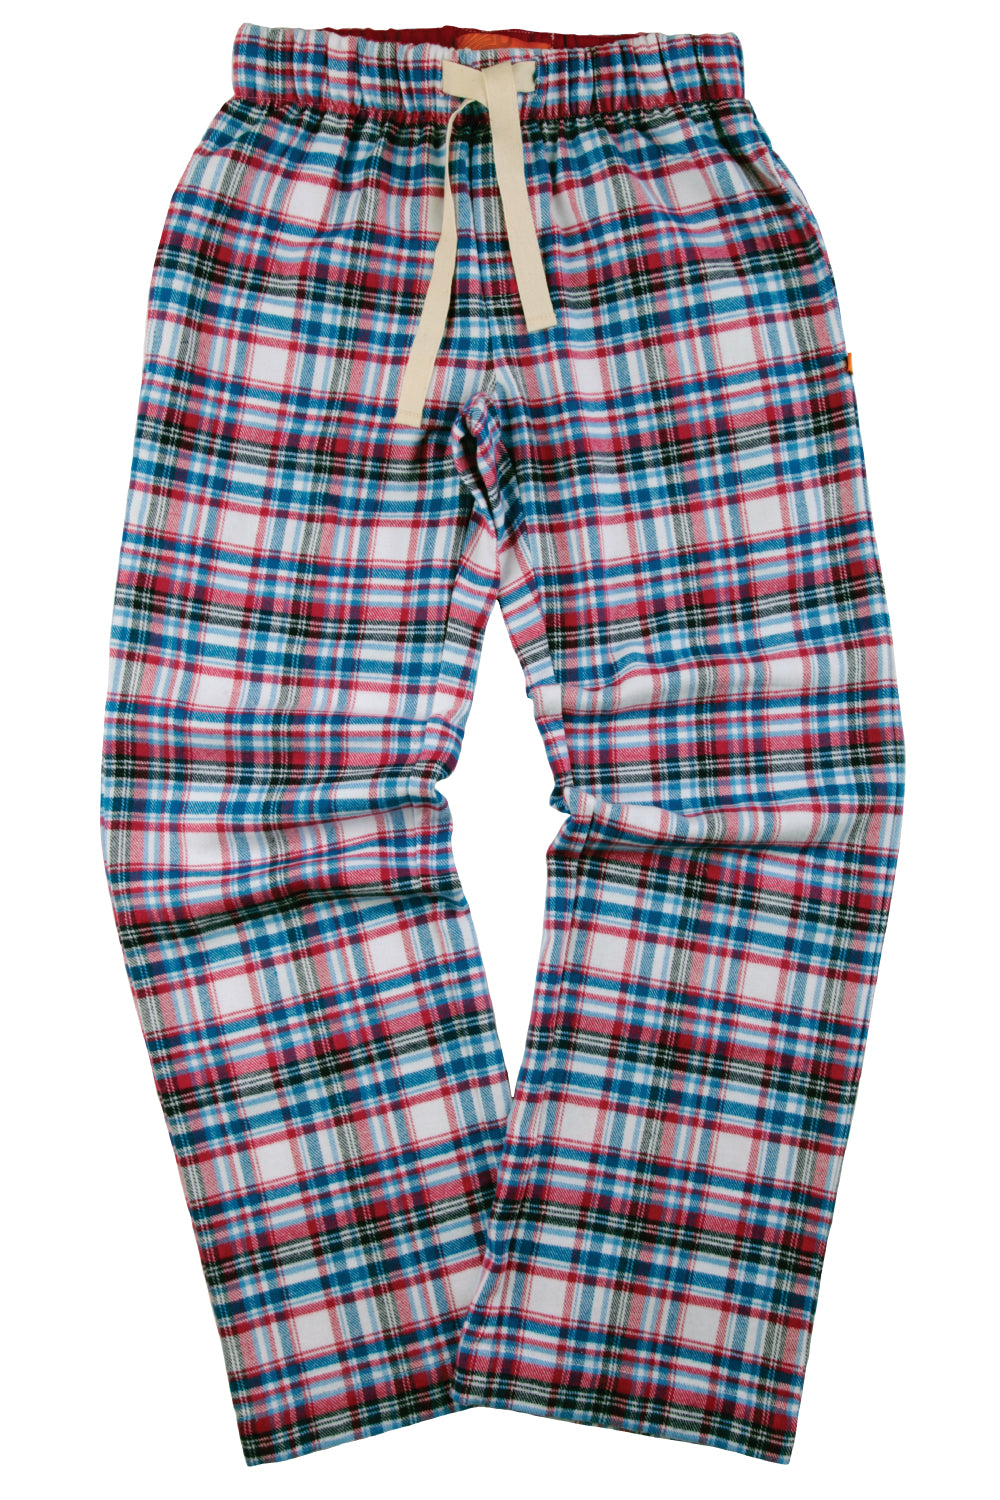 CALLOW check lounge PJ trousers for teens aged 9-16 years